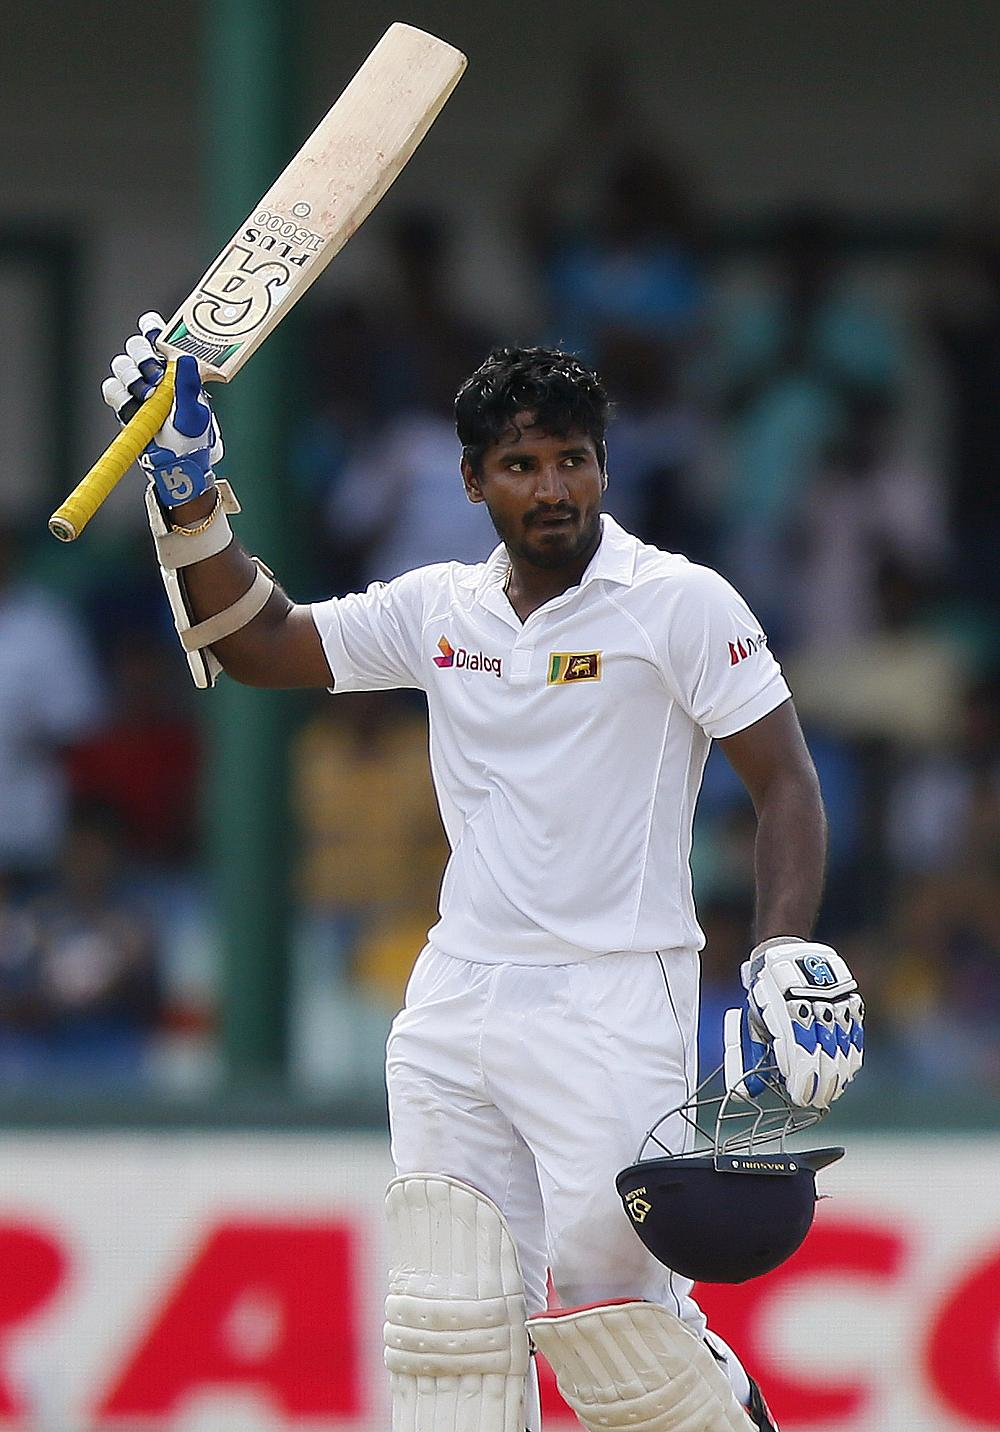 Kusal Perera, Banned 4 Years, Srilanka Cricket Player From ICC